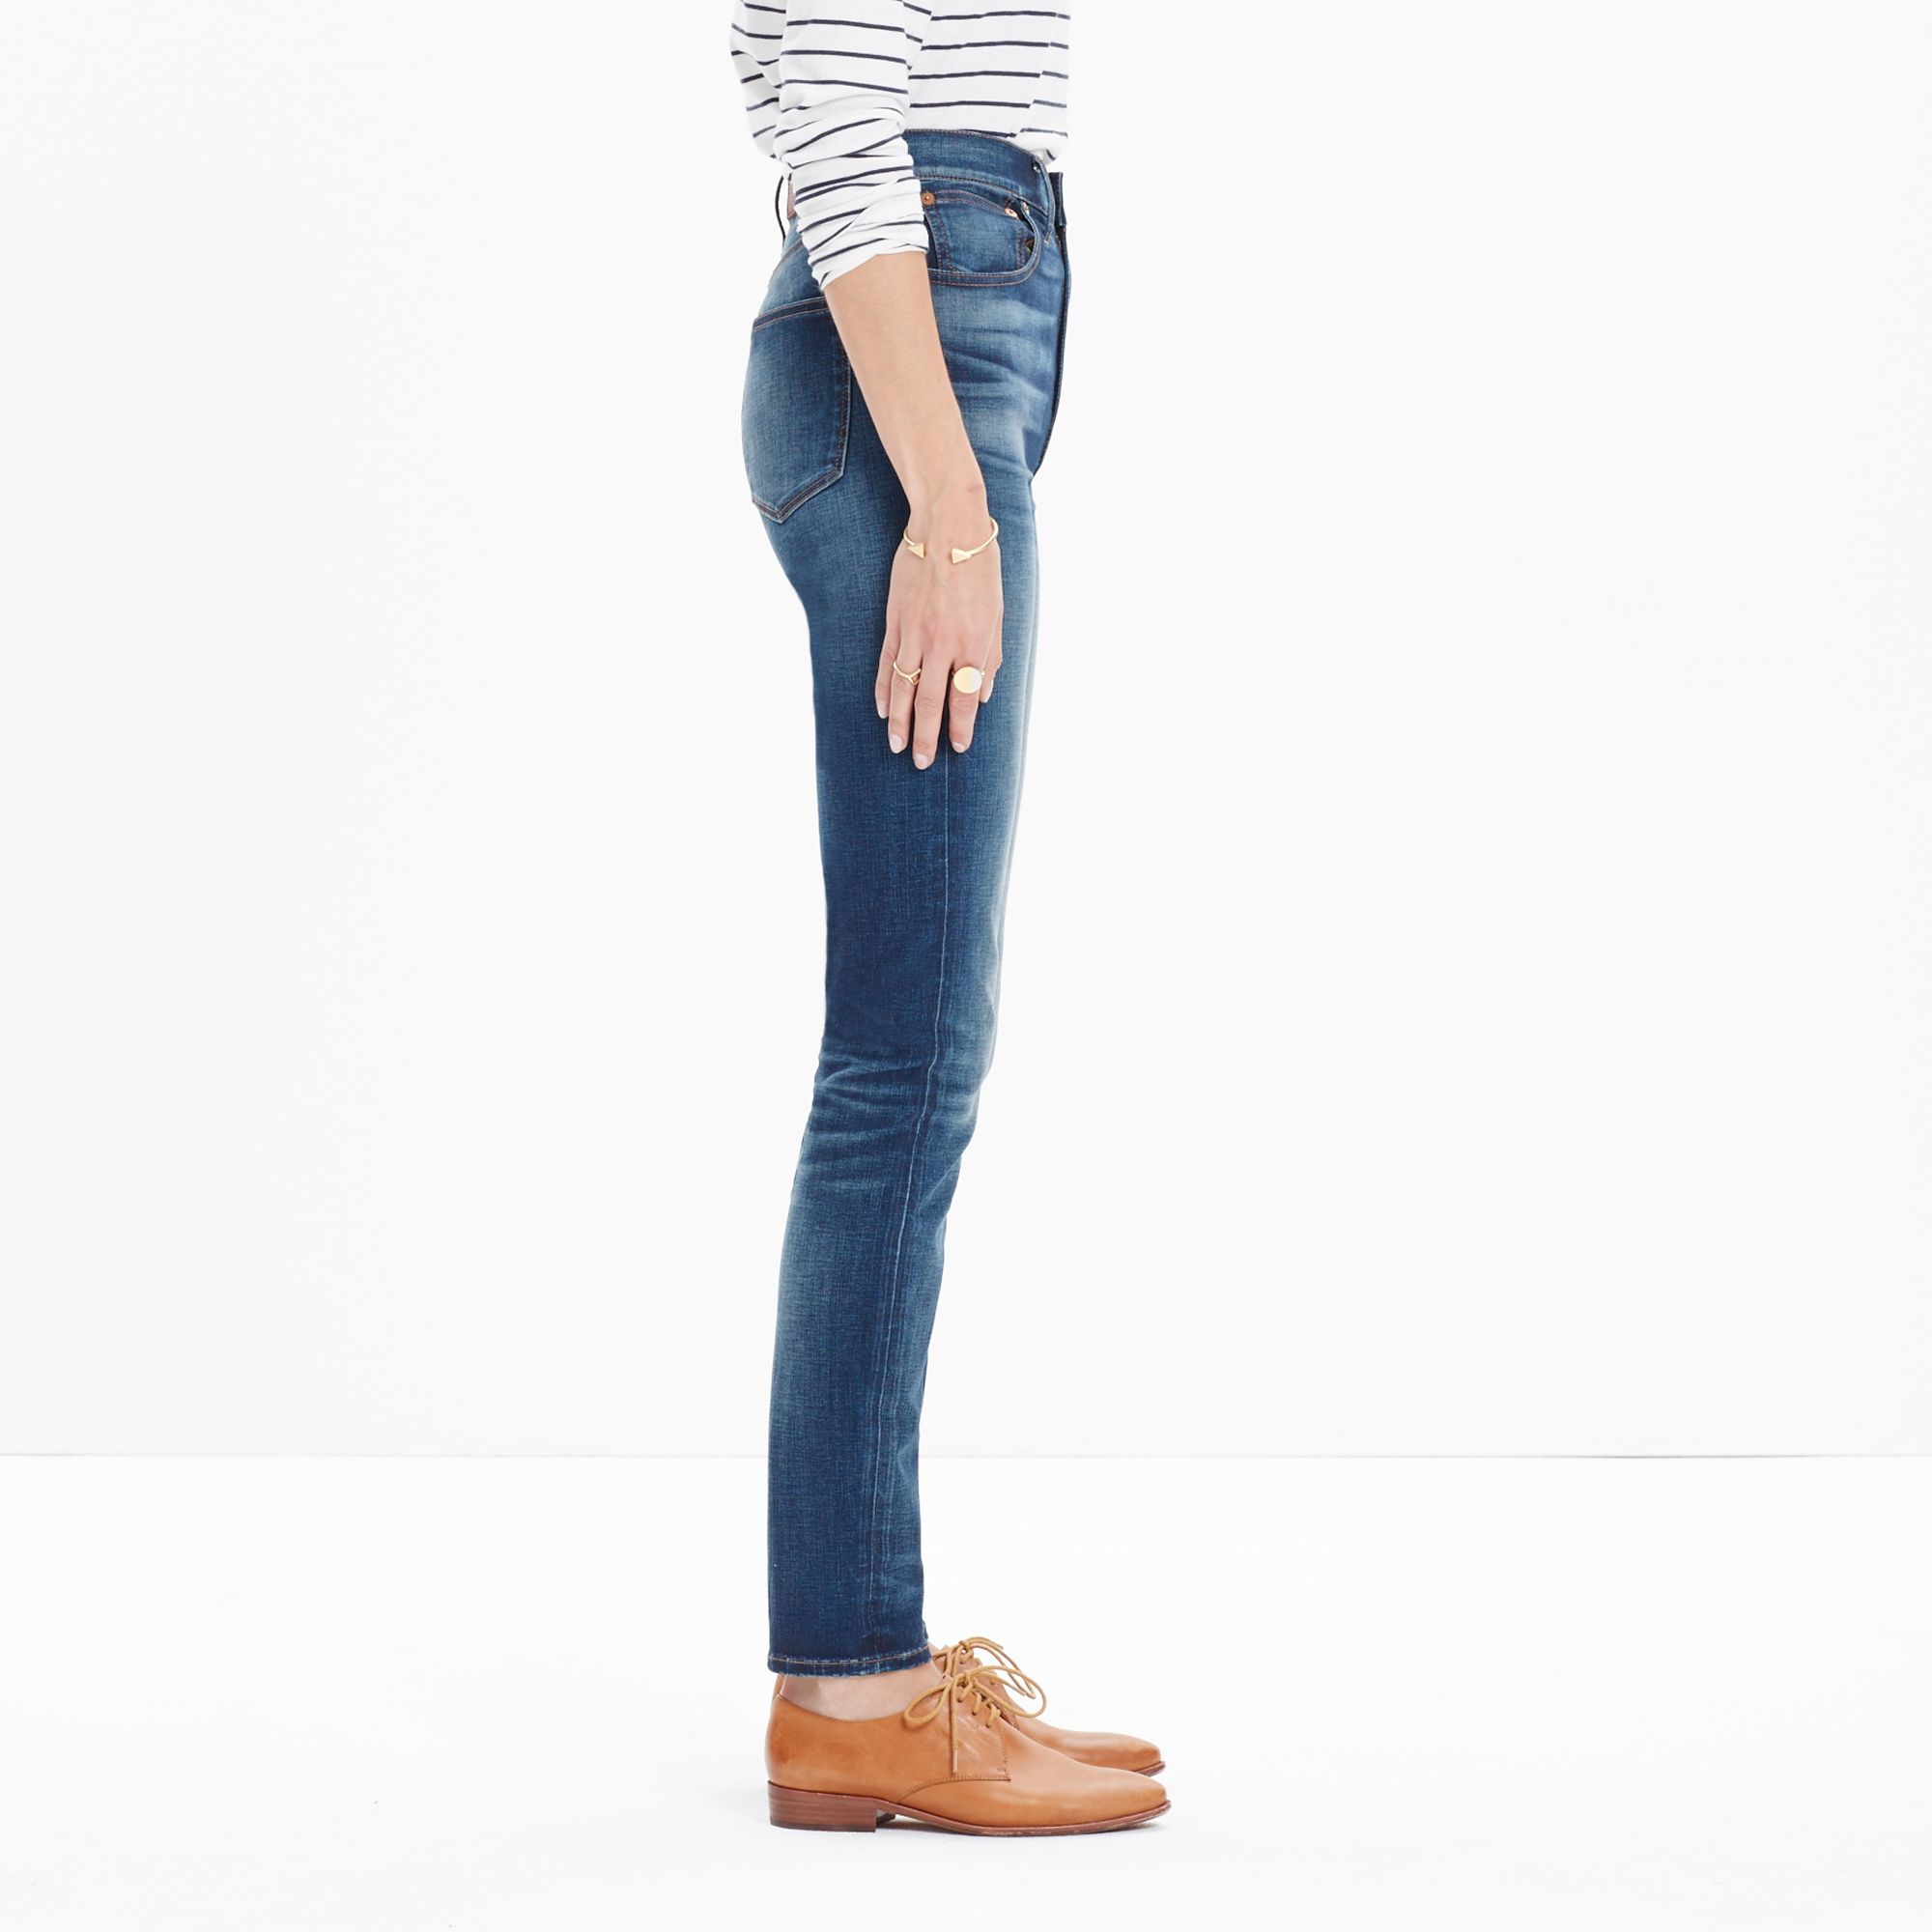 Madewell Rivet &amp Thread Extra-high Skinny Jeans In Bayshore Wash